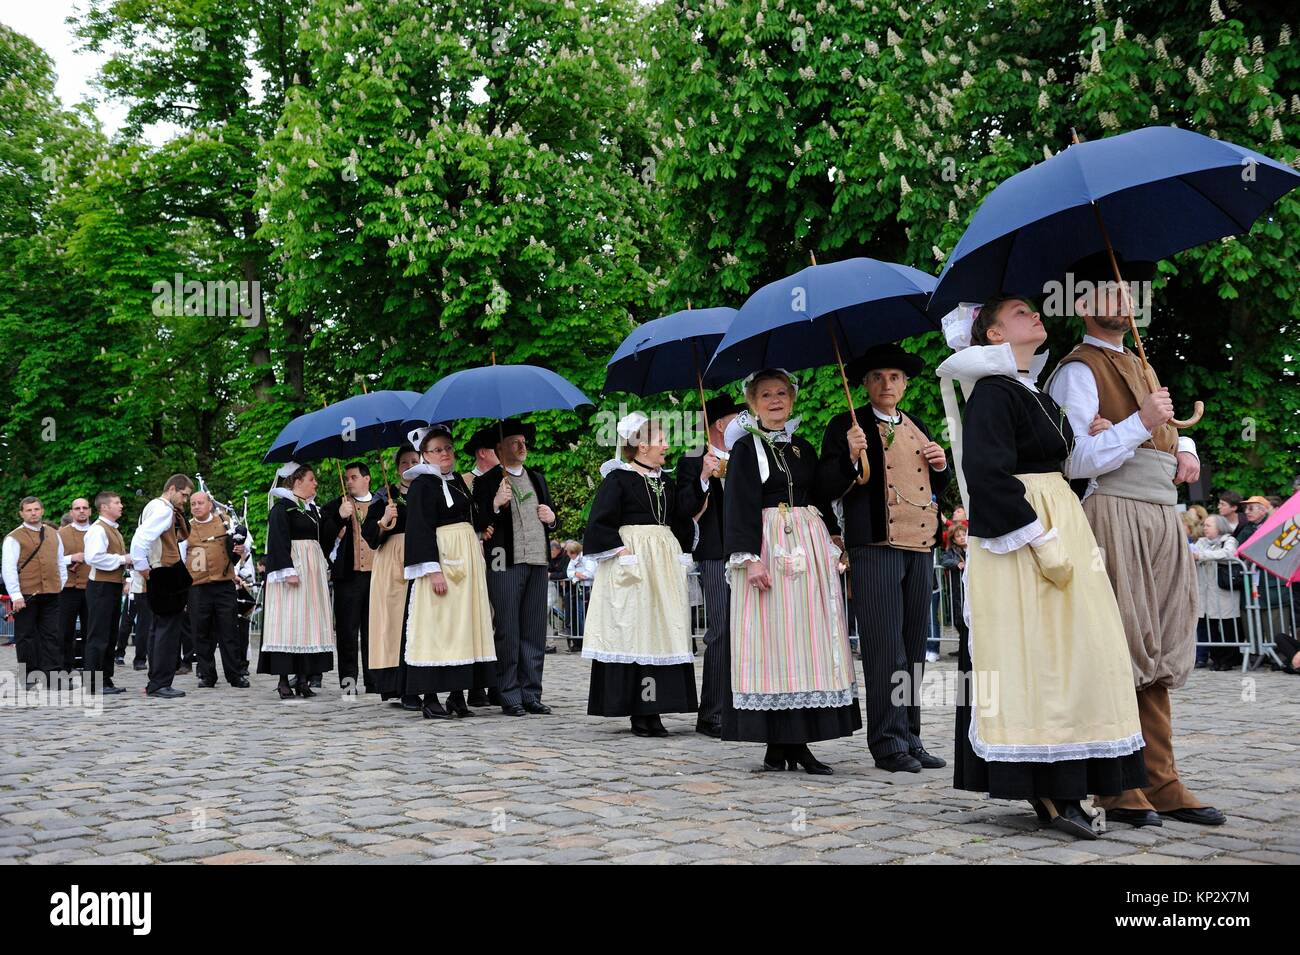 ´´Fete du Muguet´´ (Lily of the valley festival) parade at Rambouillet, Yvelines department, - Stock Image